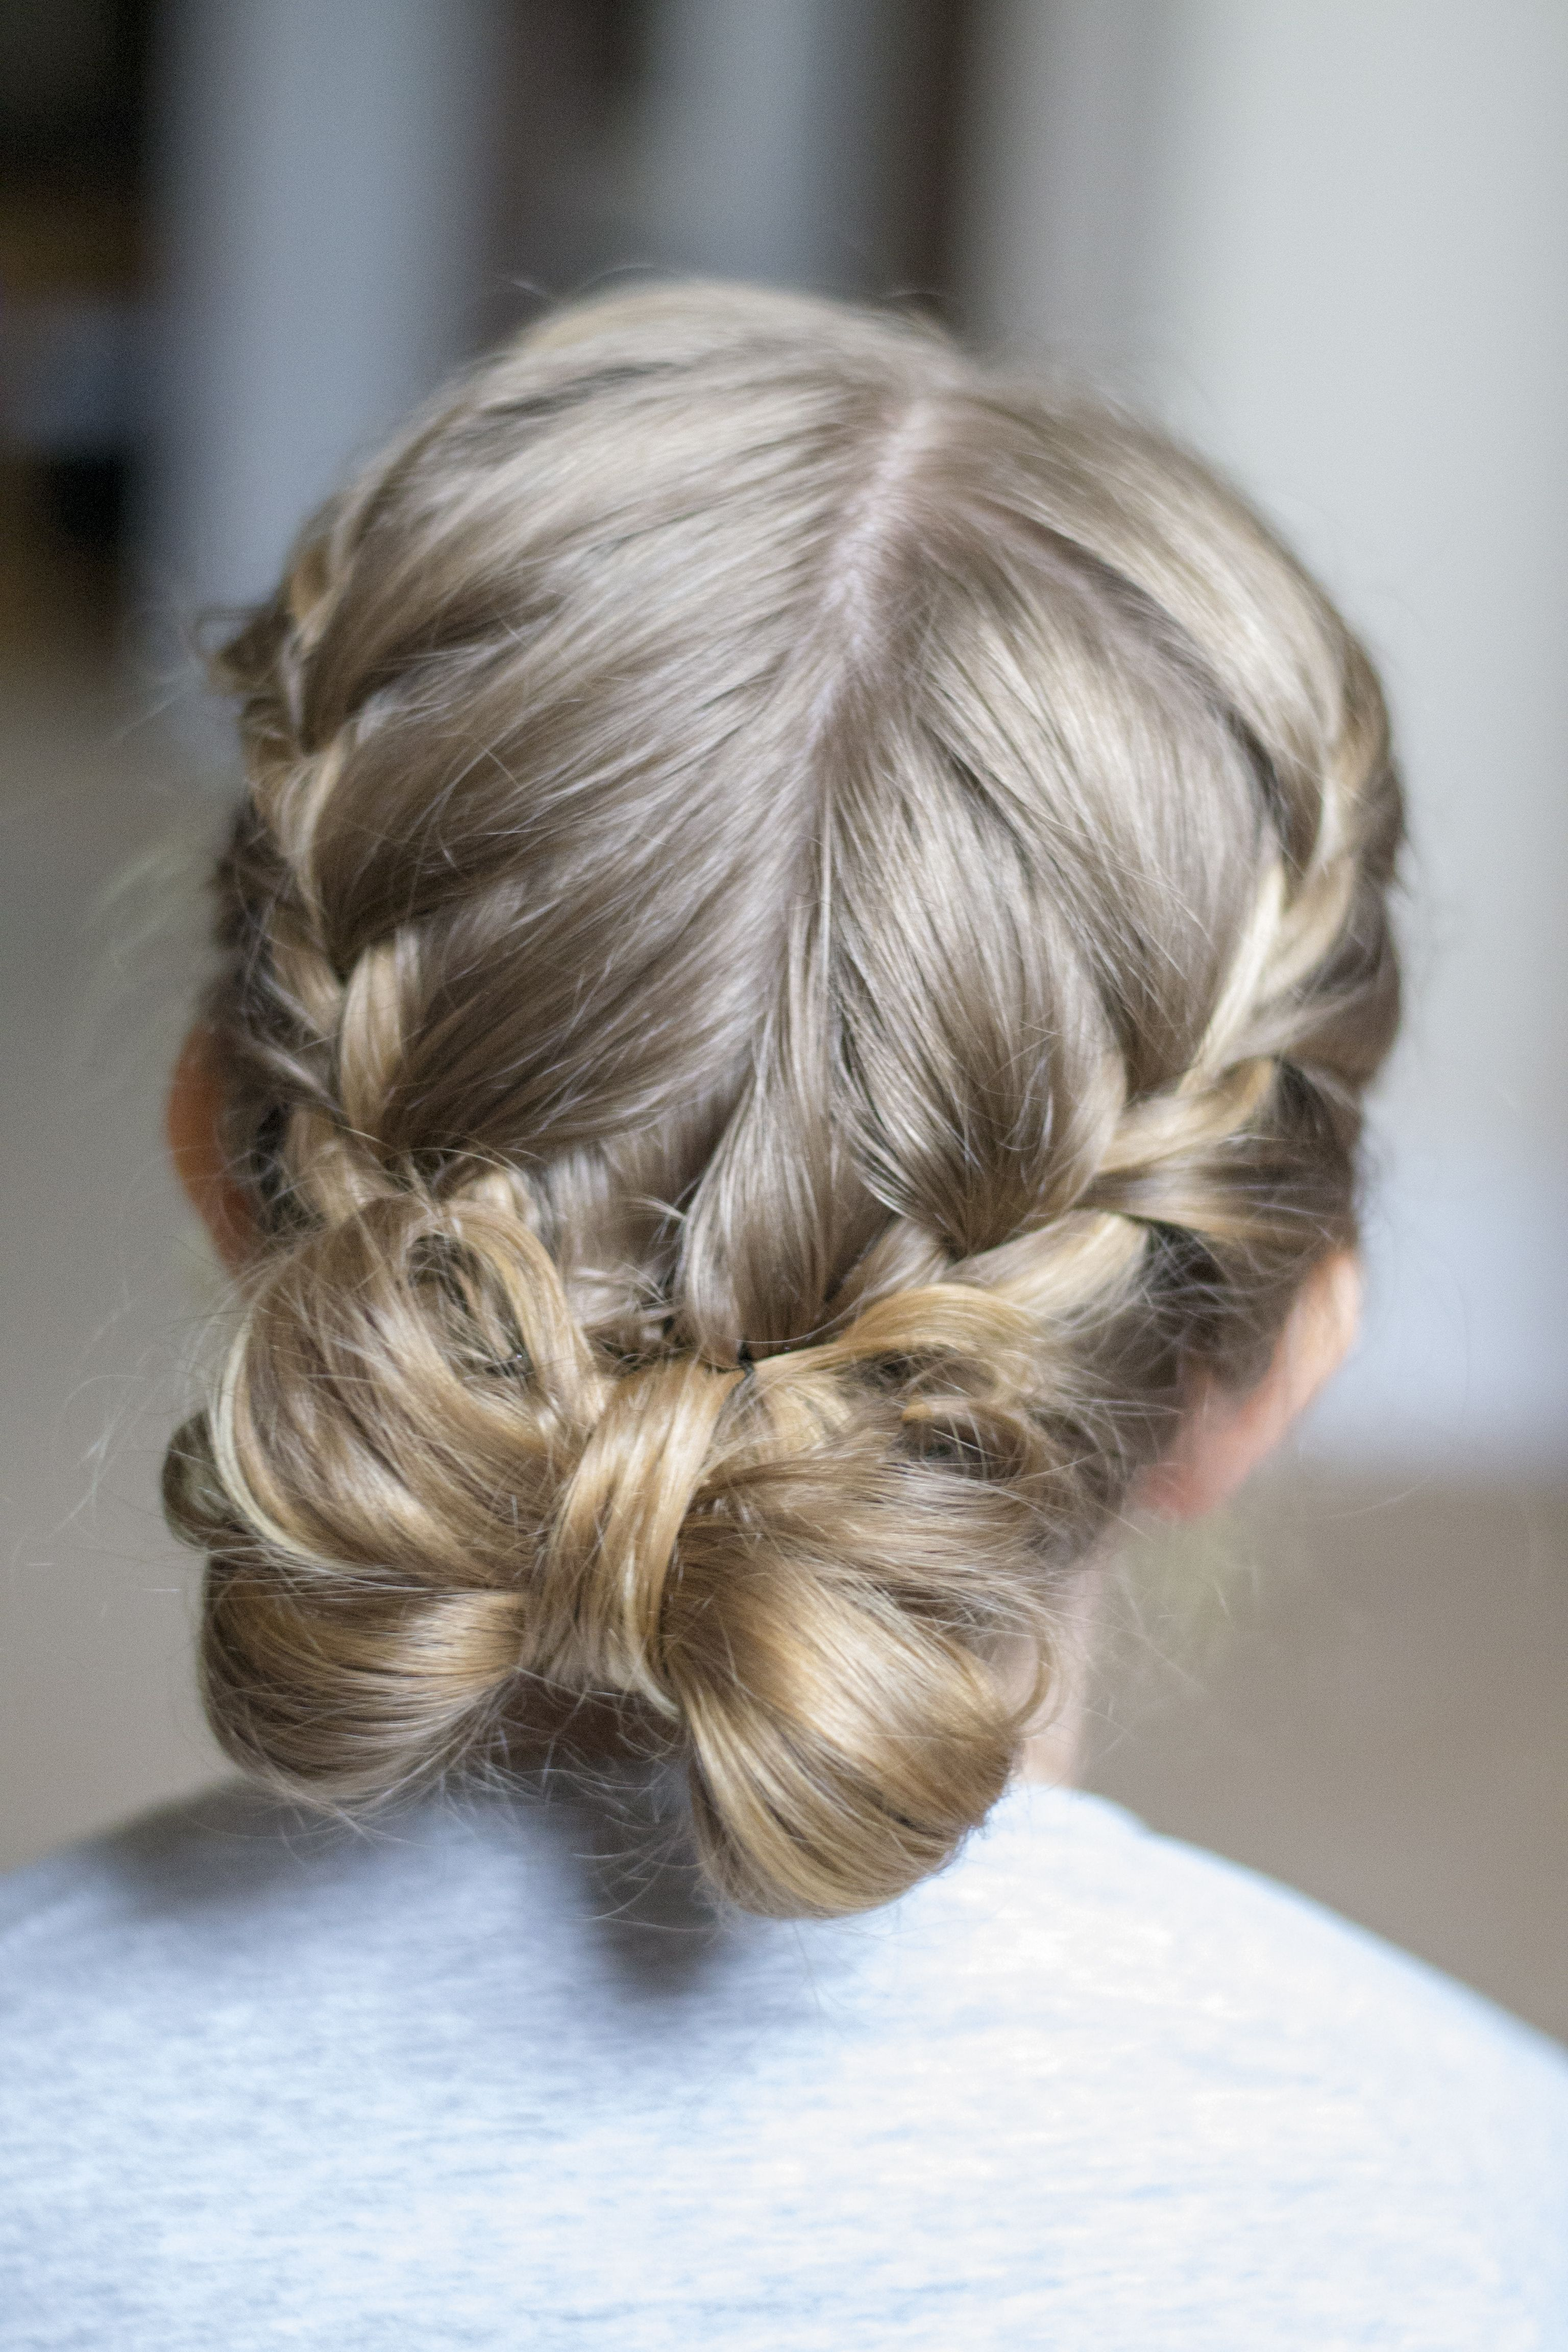 Flower girl hair styles, simple and pretty, french braid into a bow. | Flower girl hairstyles ...